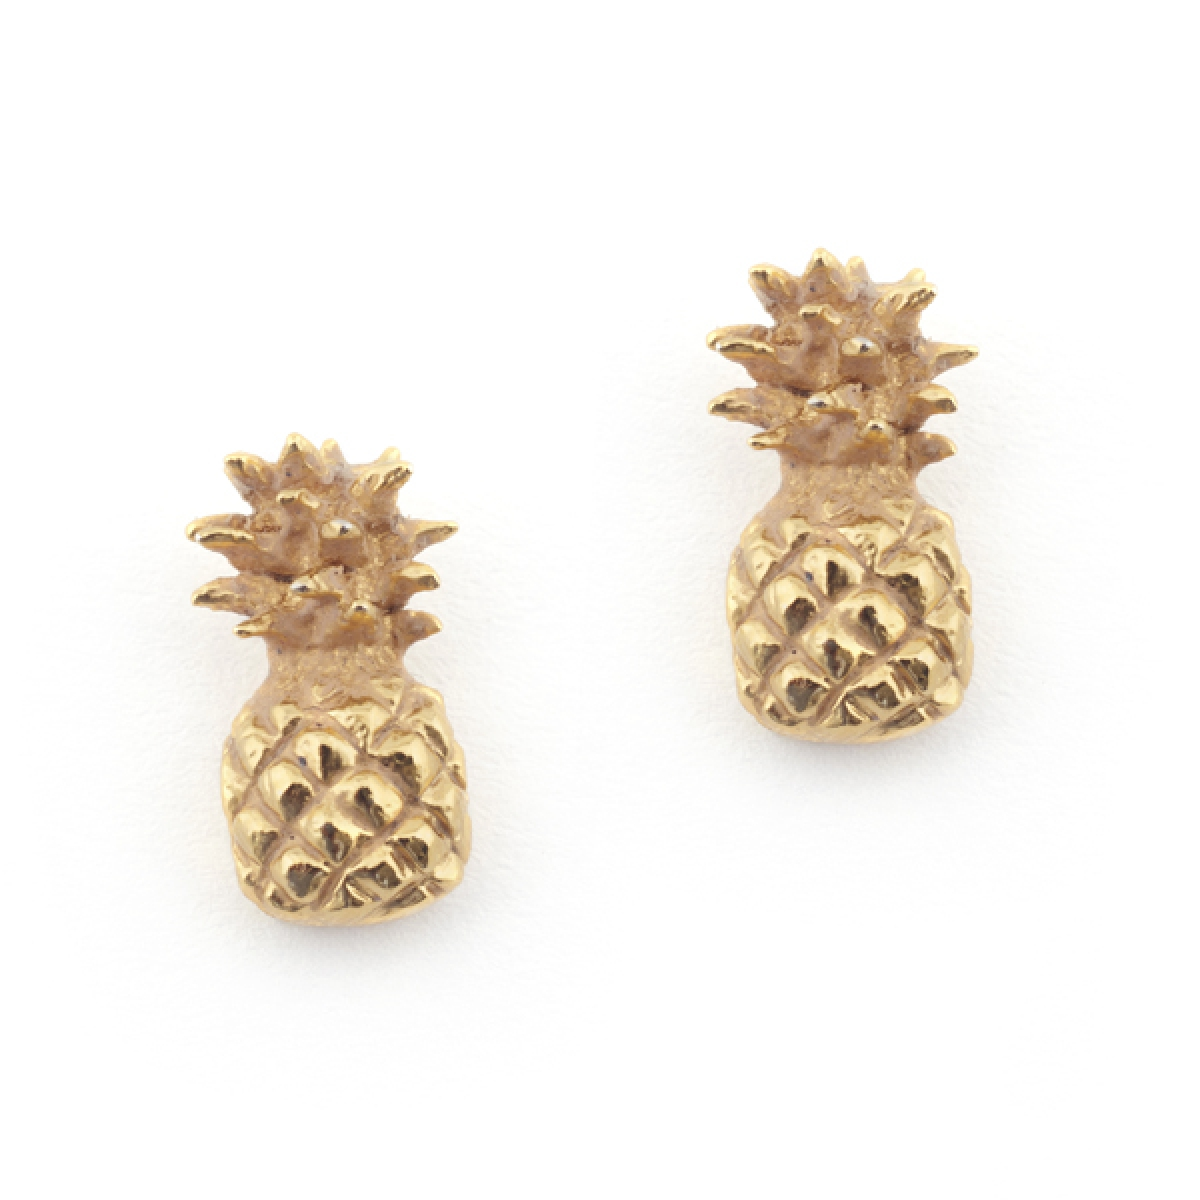 earrings detail image stud pineapple eye product angeles candy crystal los shop of